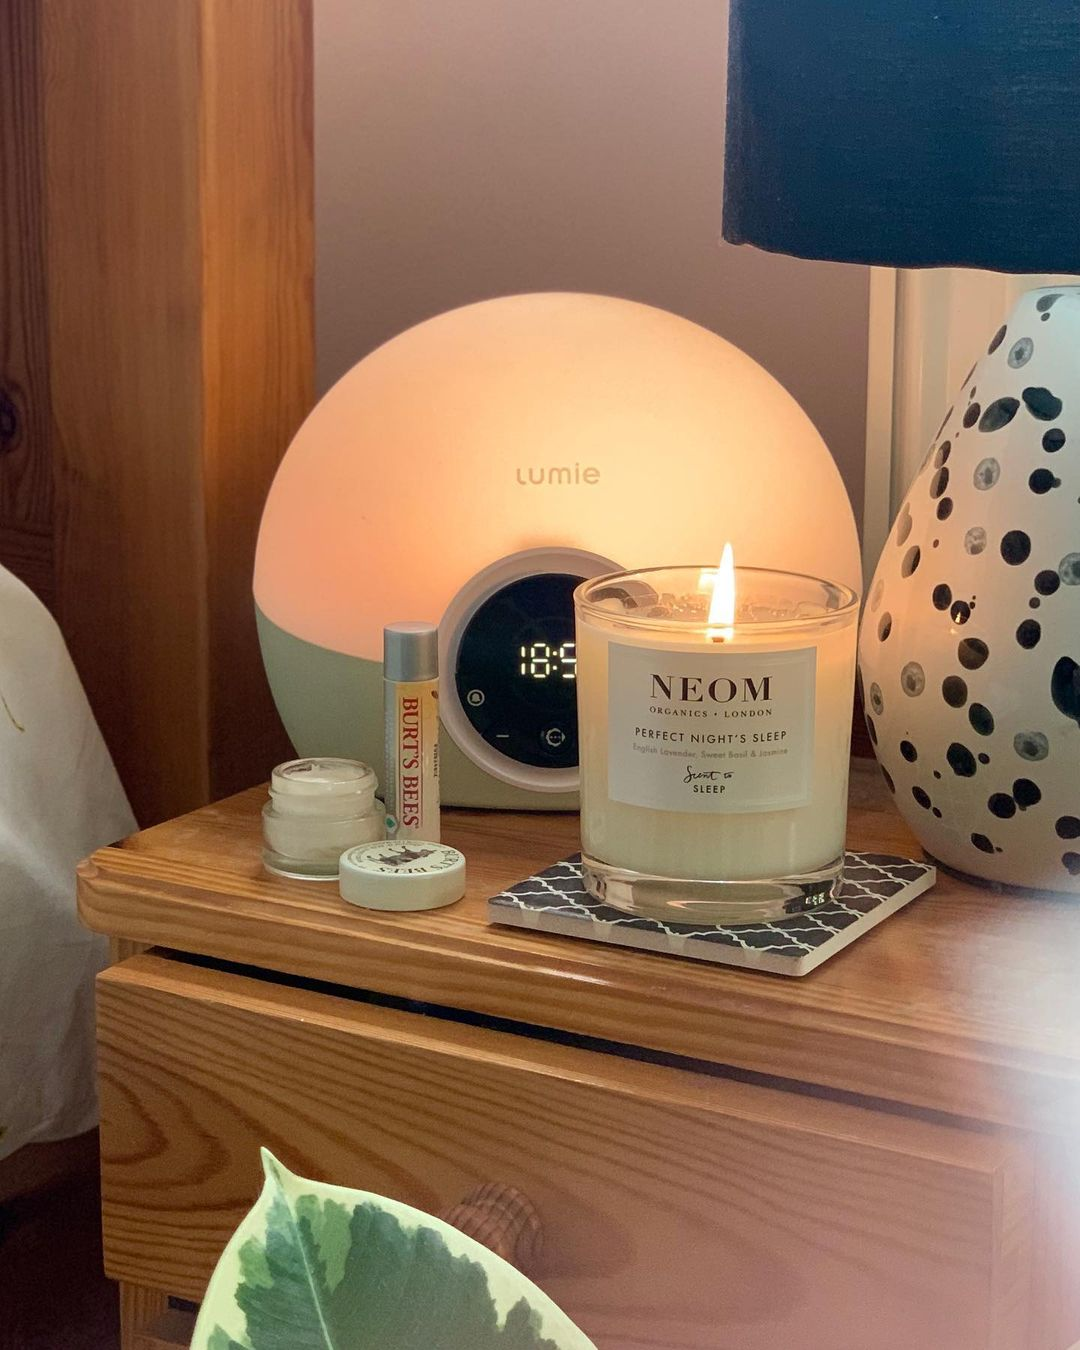 Bedside lamp with candle